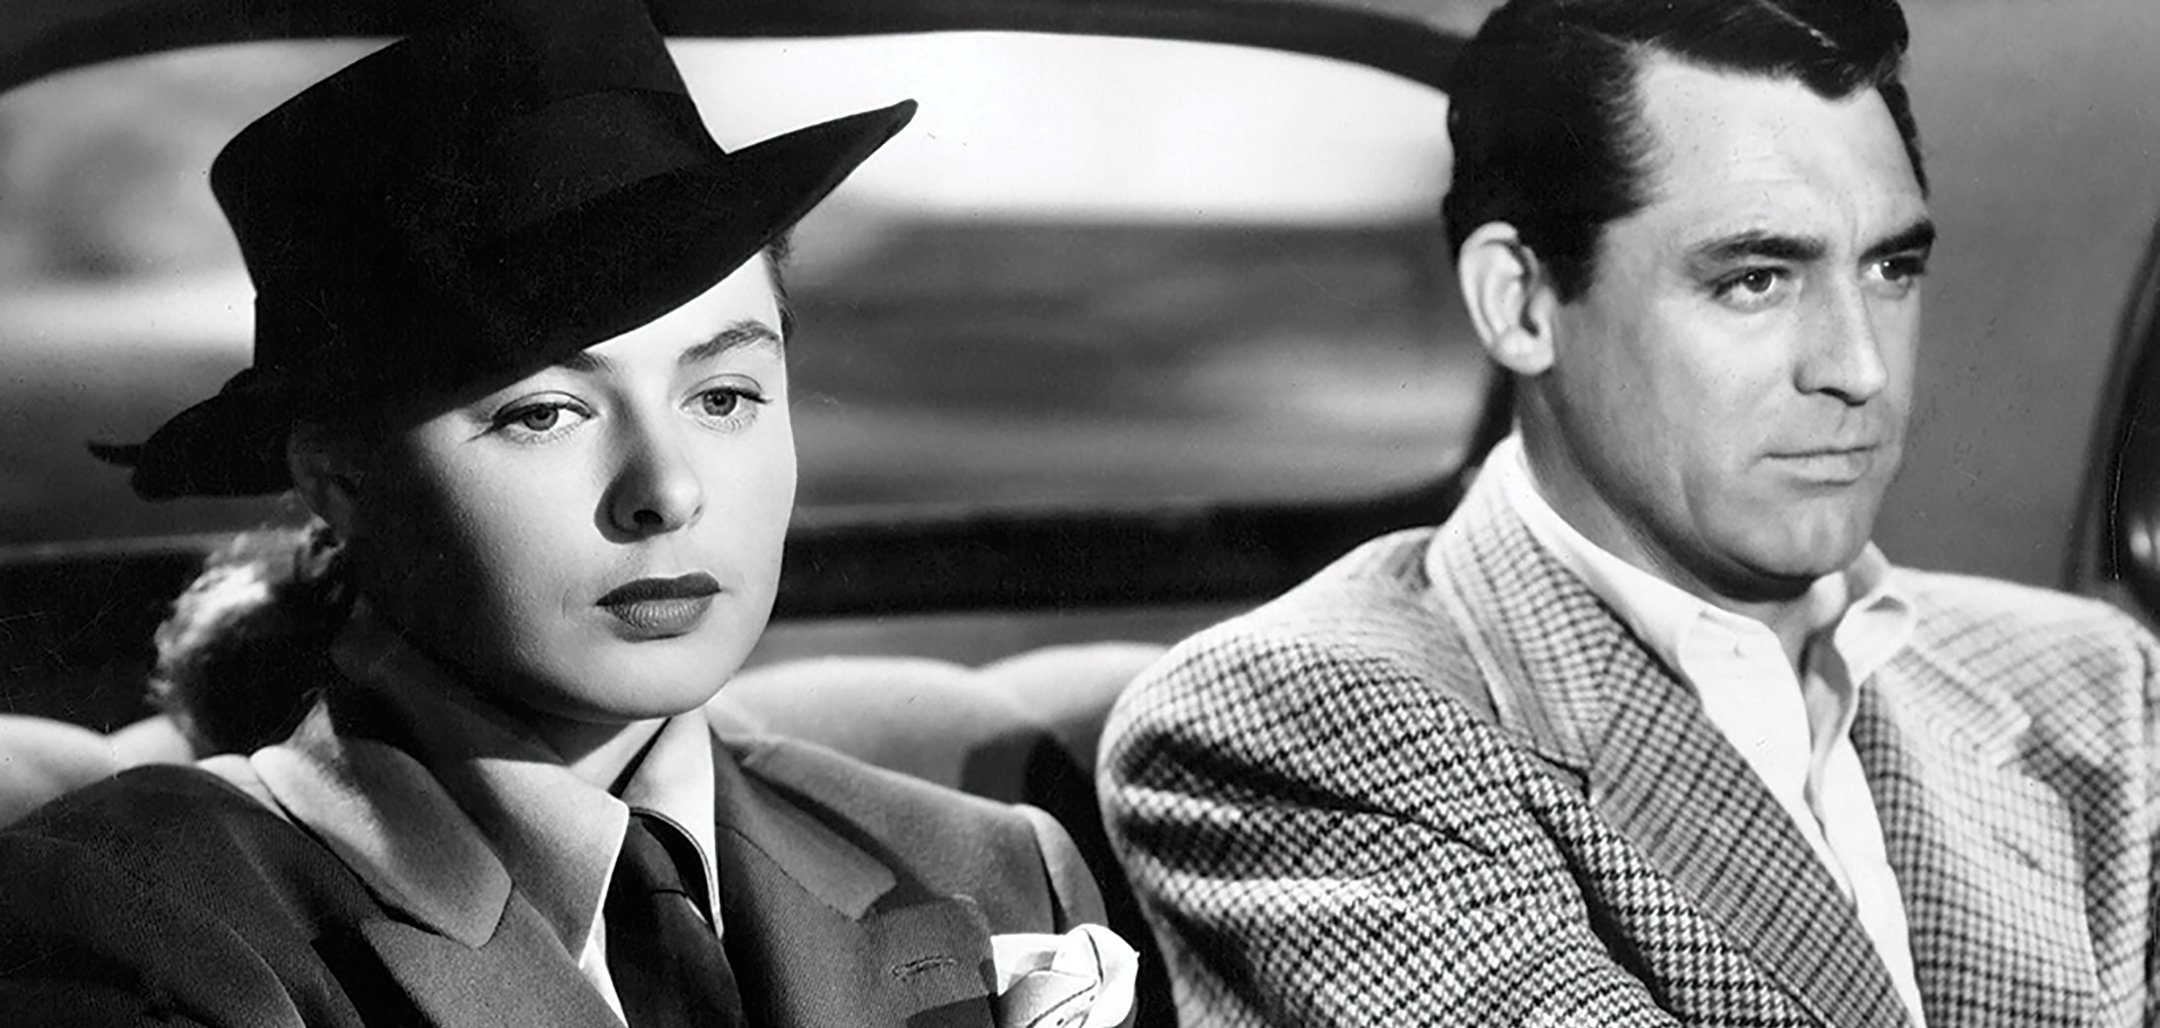 Ingrid Bergman and Cary Grant in a car in a still from 'Notorious' (1946)